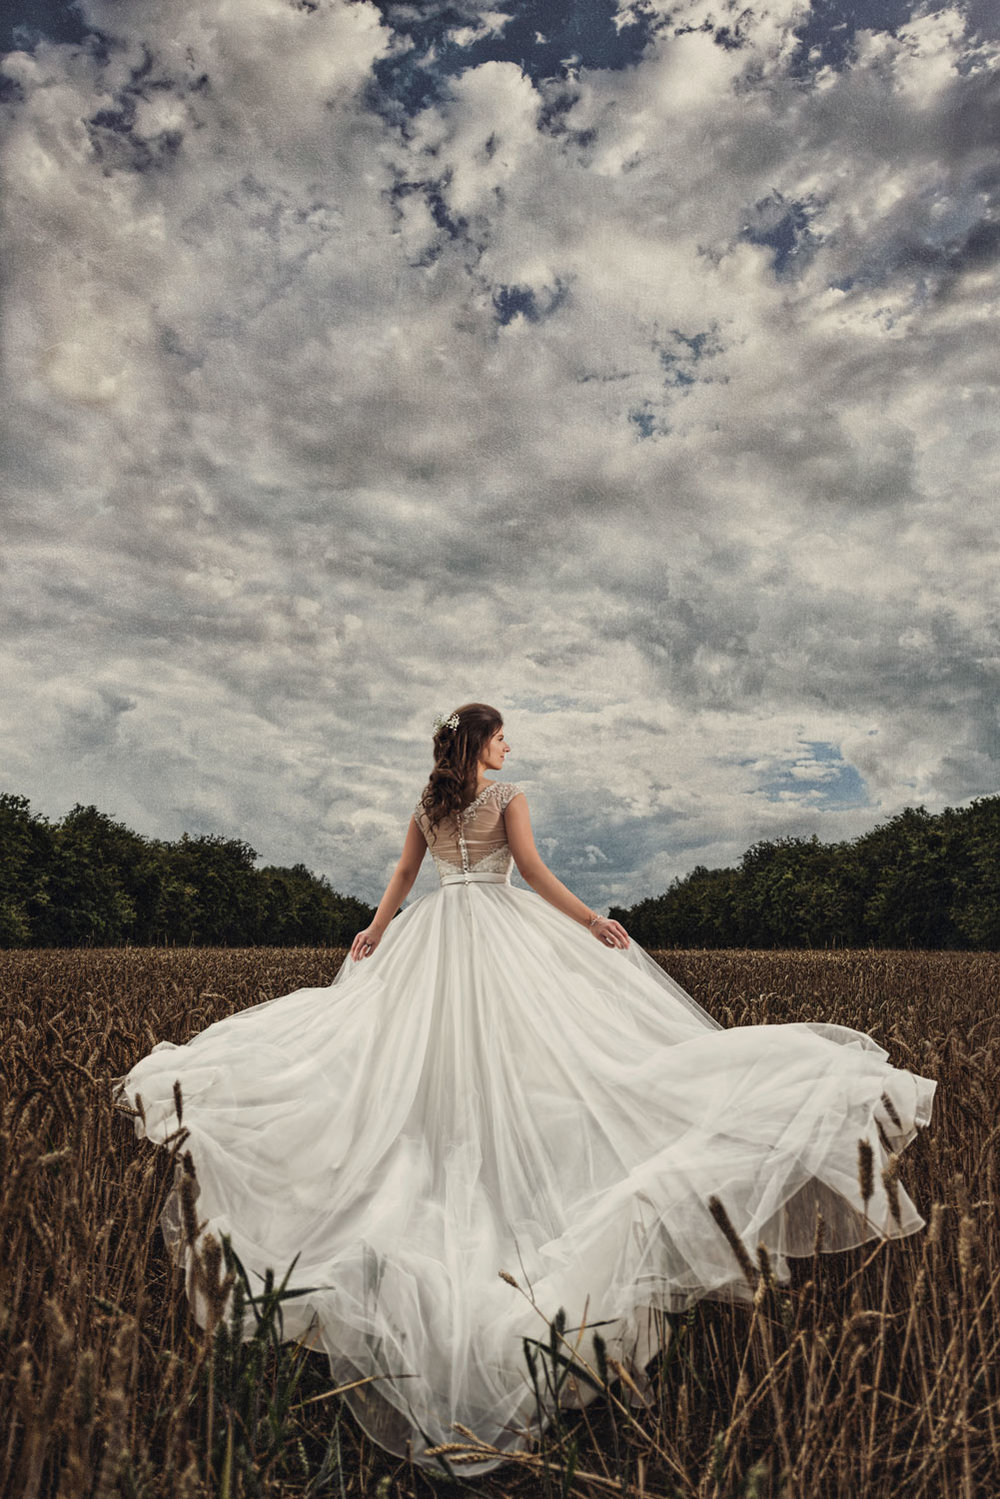 Bride walking through wheat field holding her dress